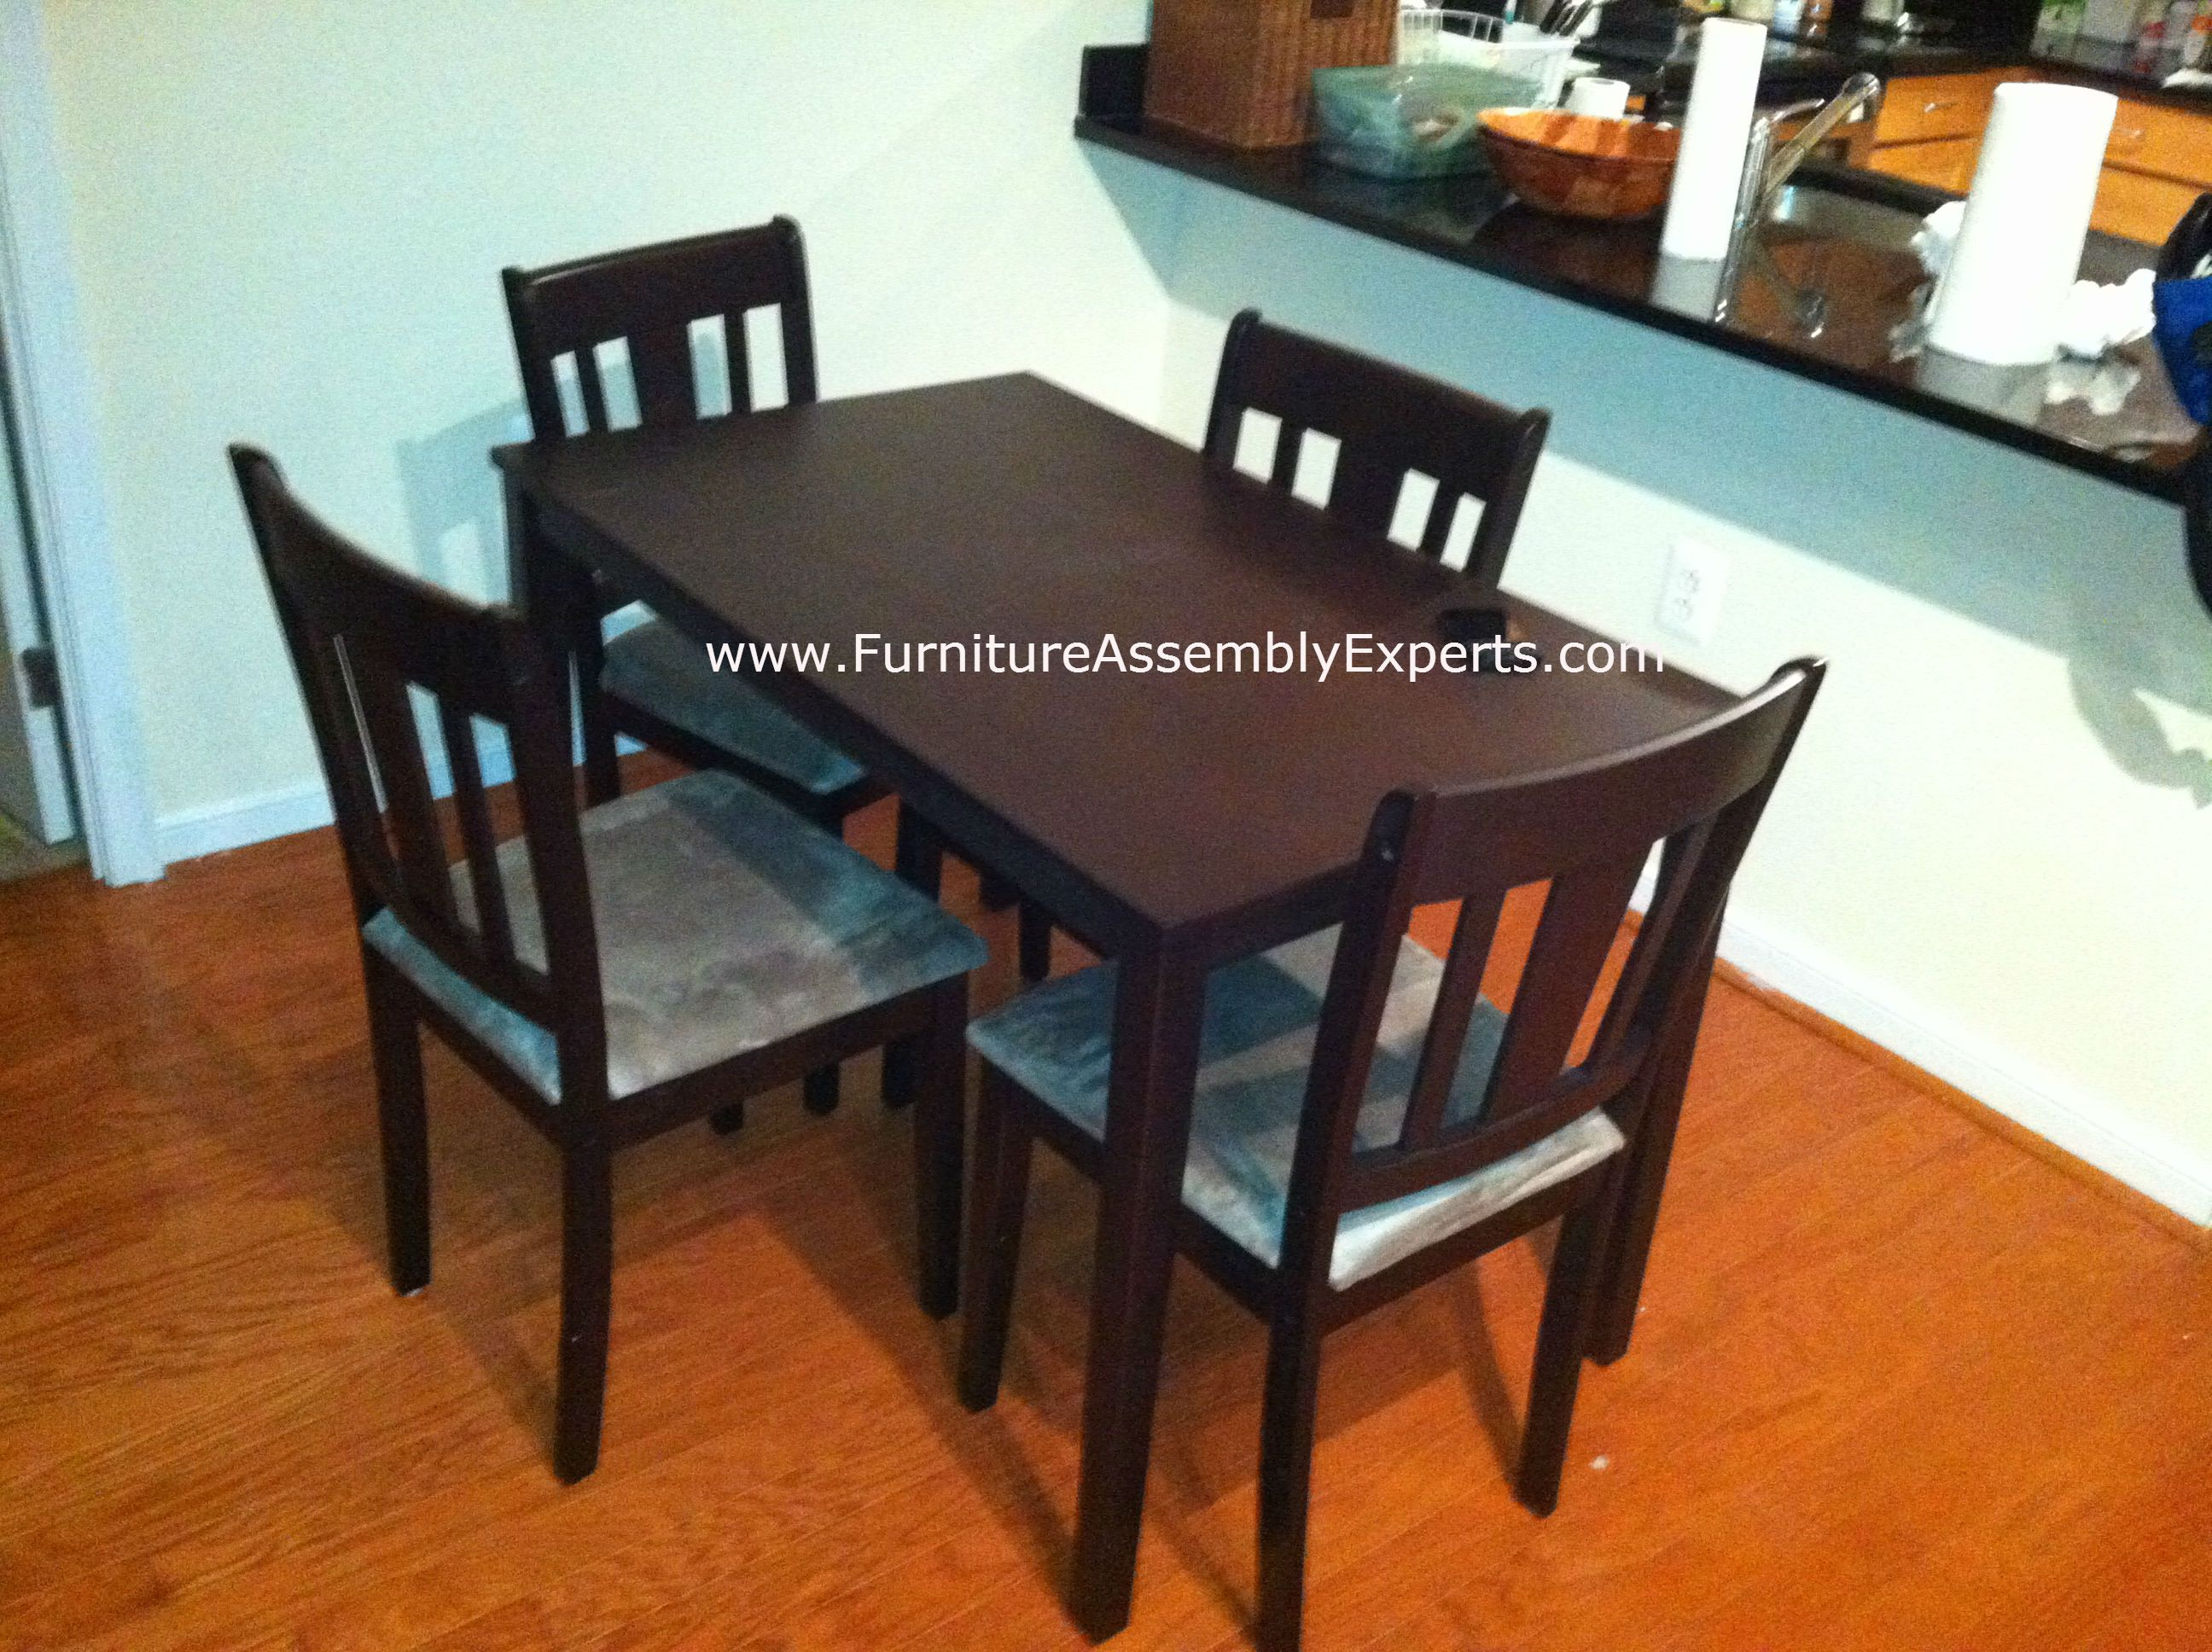 Wayfair Dining Table And Chairs Assembled In Glen Burnie MD By Furniture  Assembly Experts LLC